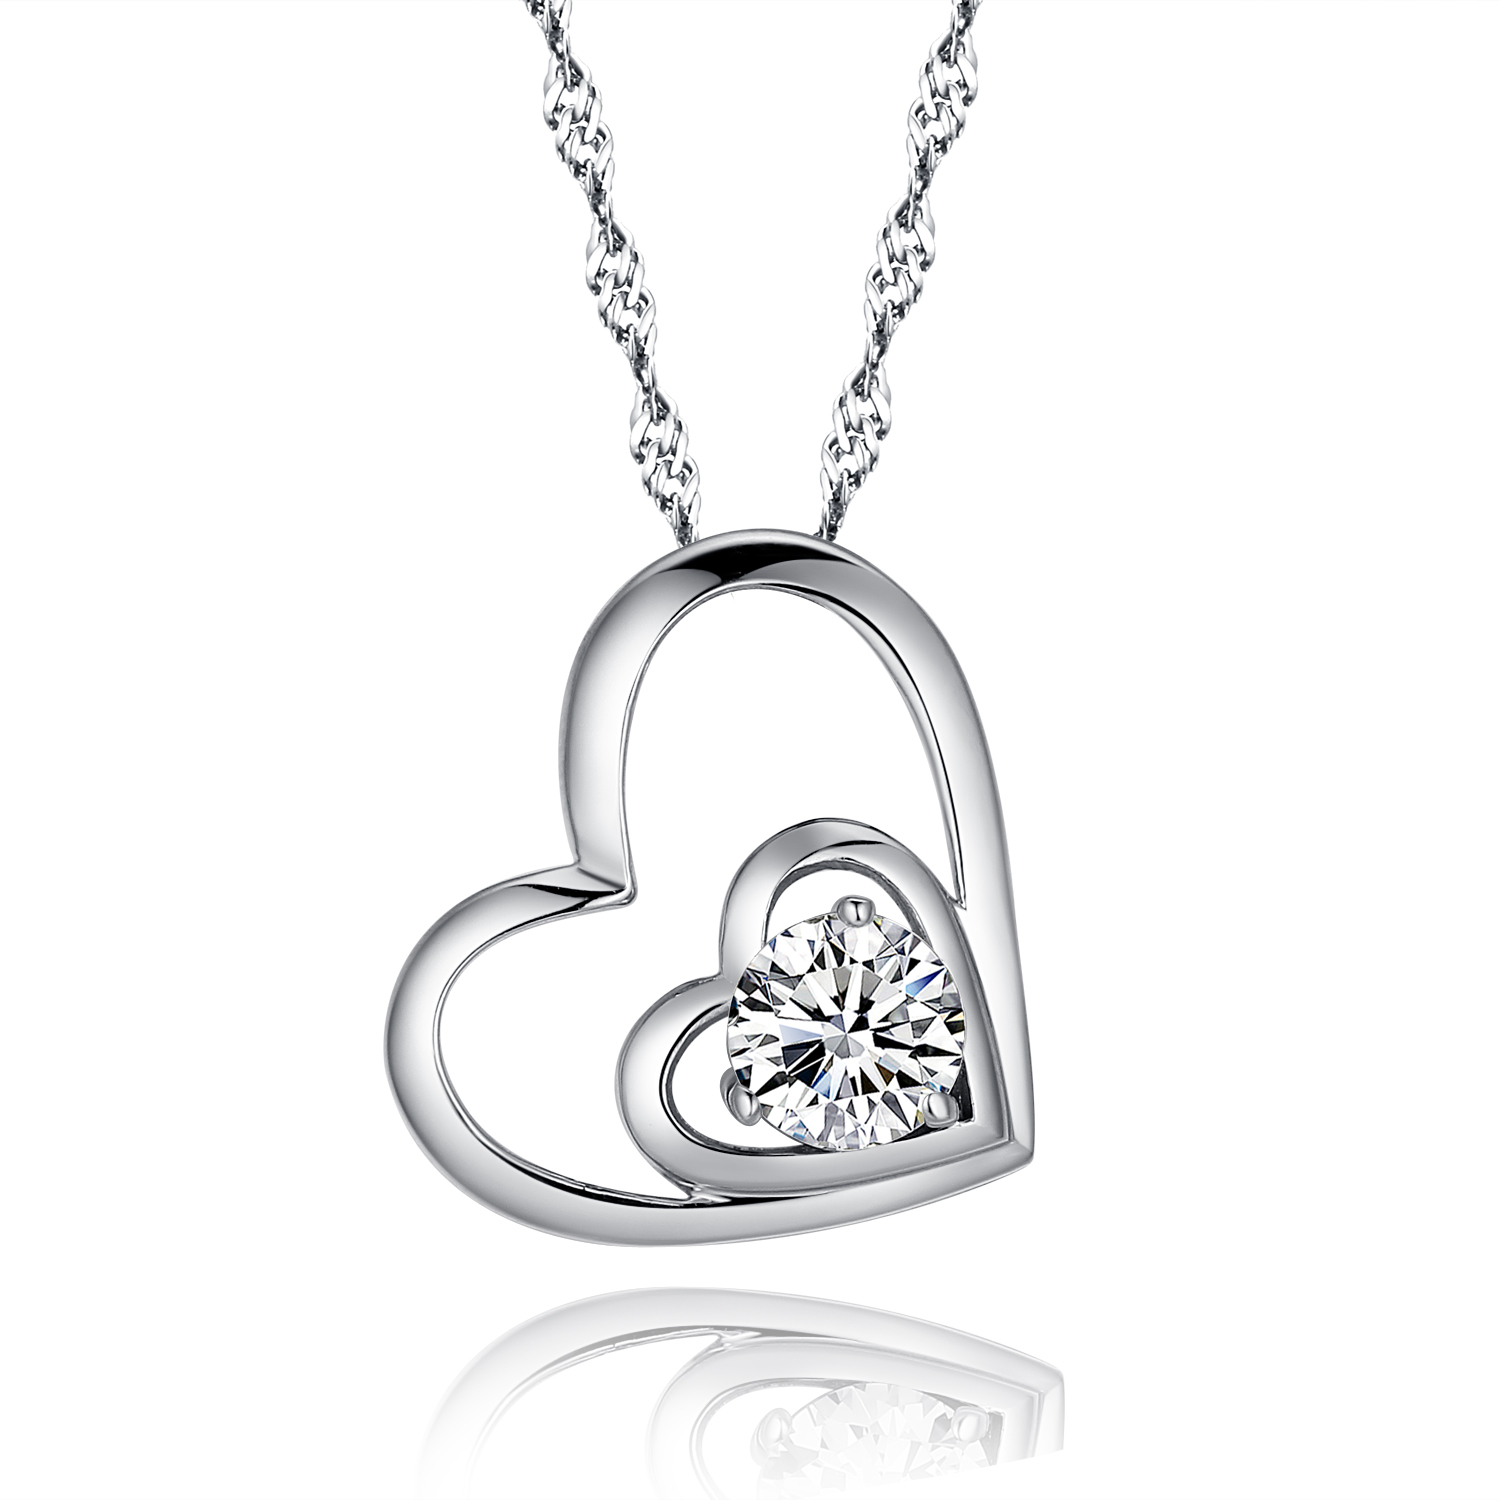 necklace pendant hei chain silver fmt about sterling a this p heart wid item accent diamond double with